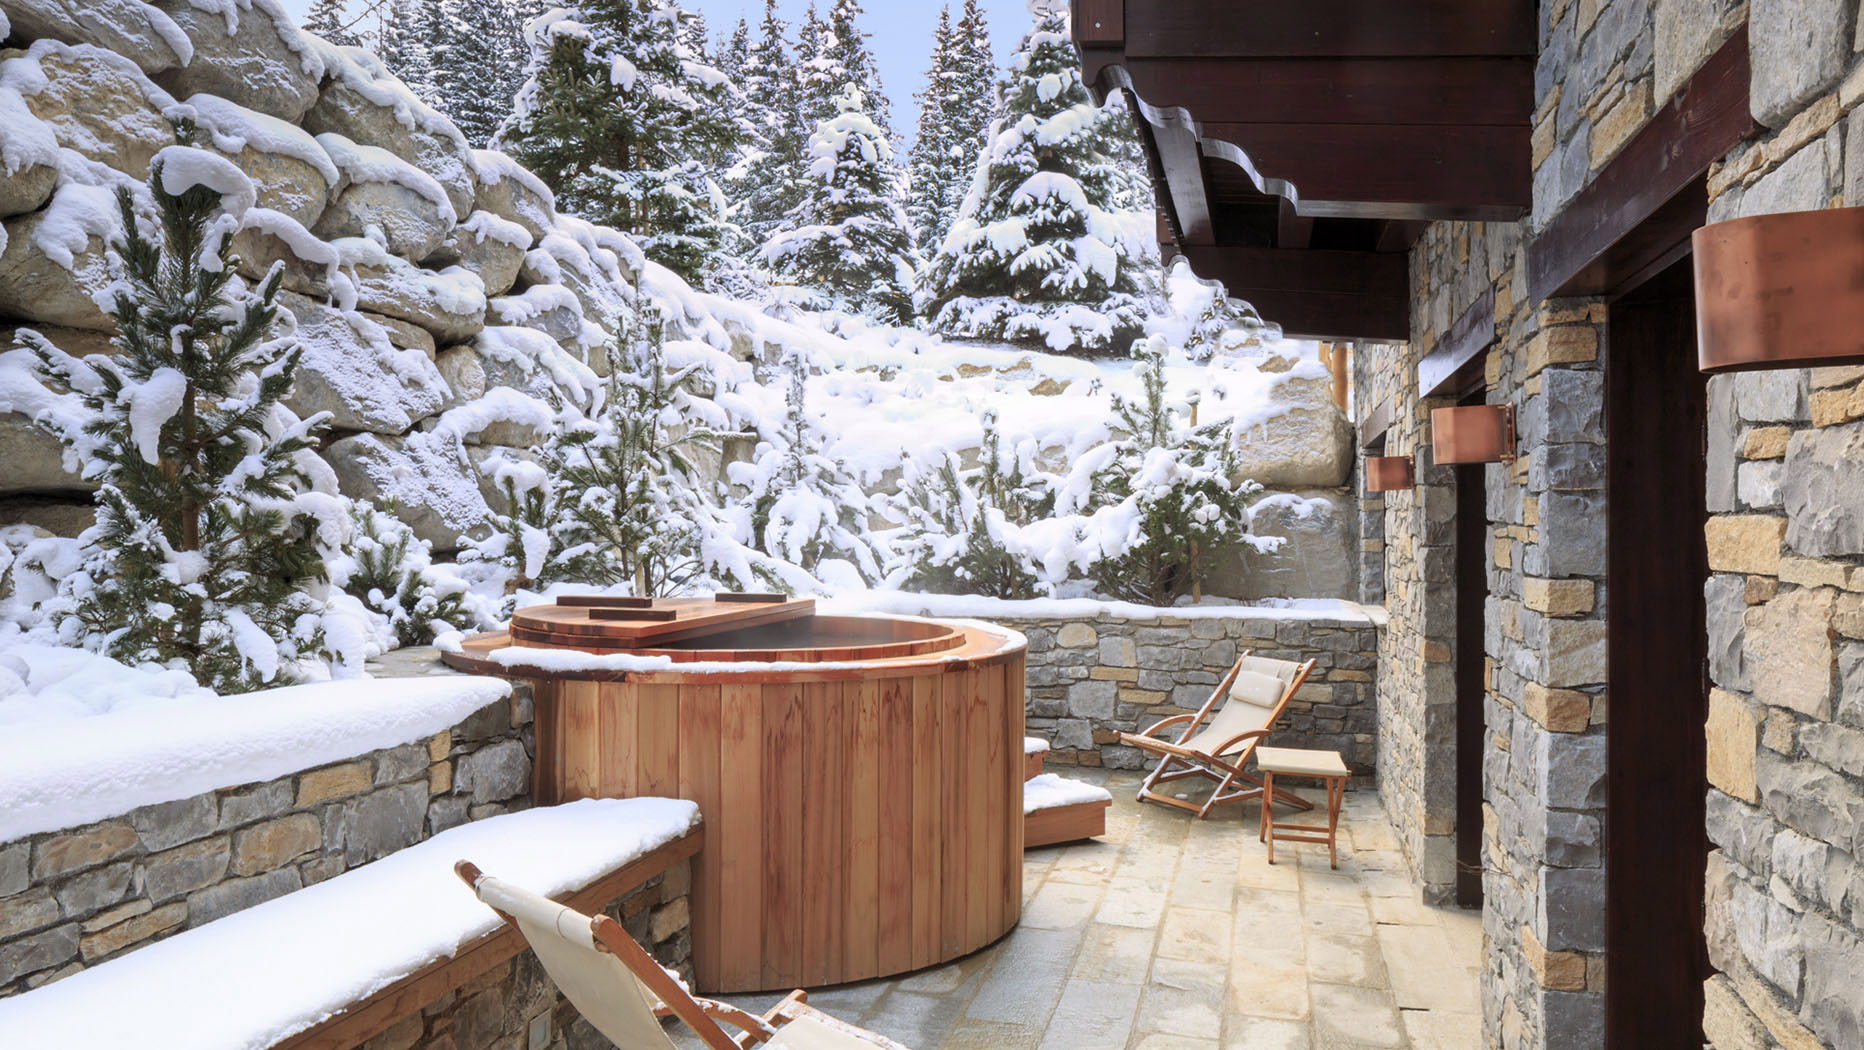 The Chalet, Cheval Blanc, Courchevel 1850, France